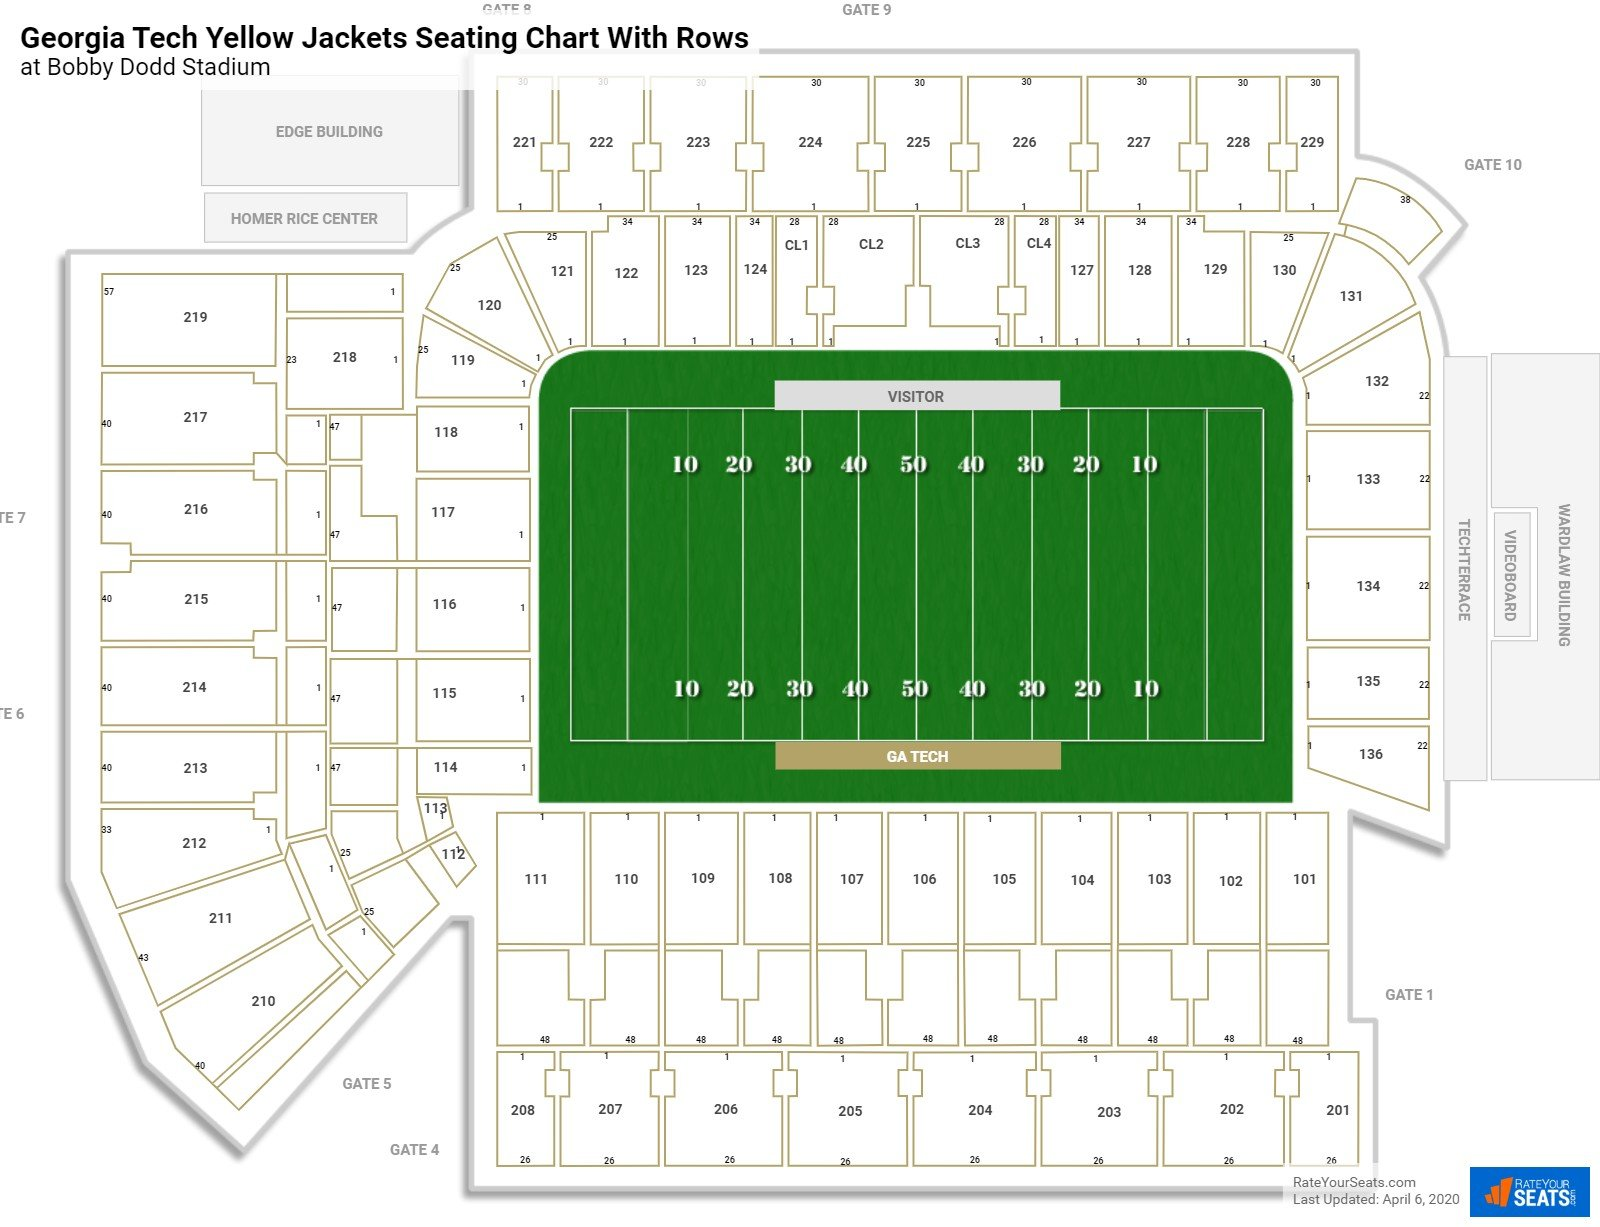 Bobby Dodd Stadium seating chart with rows